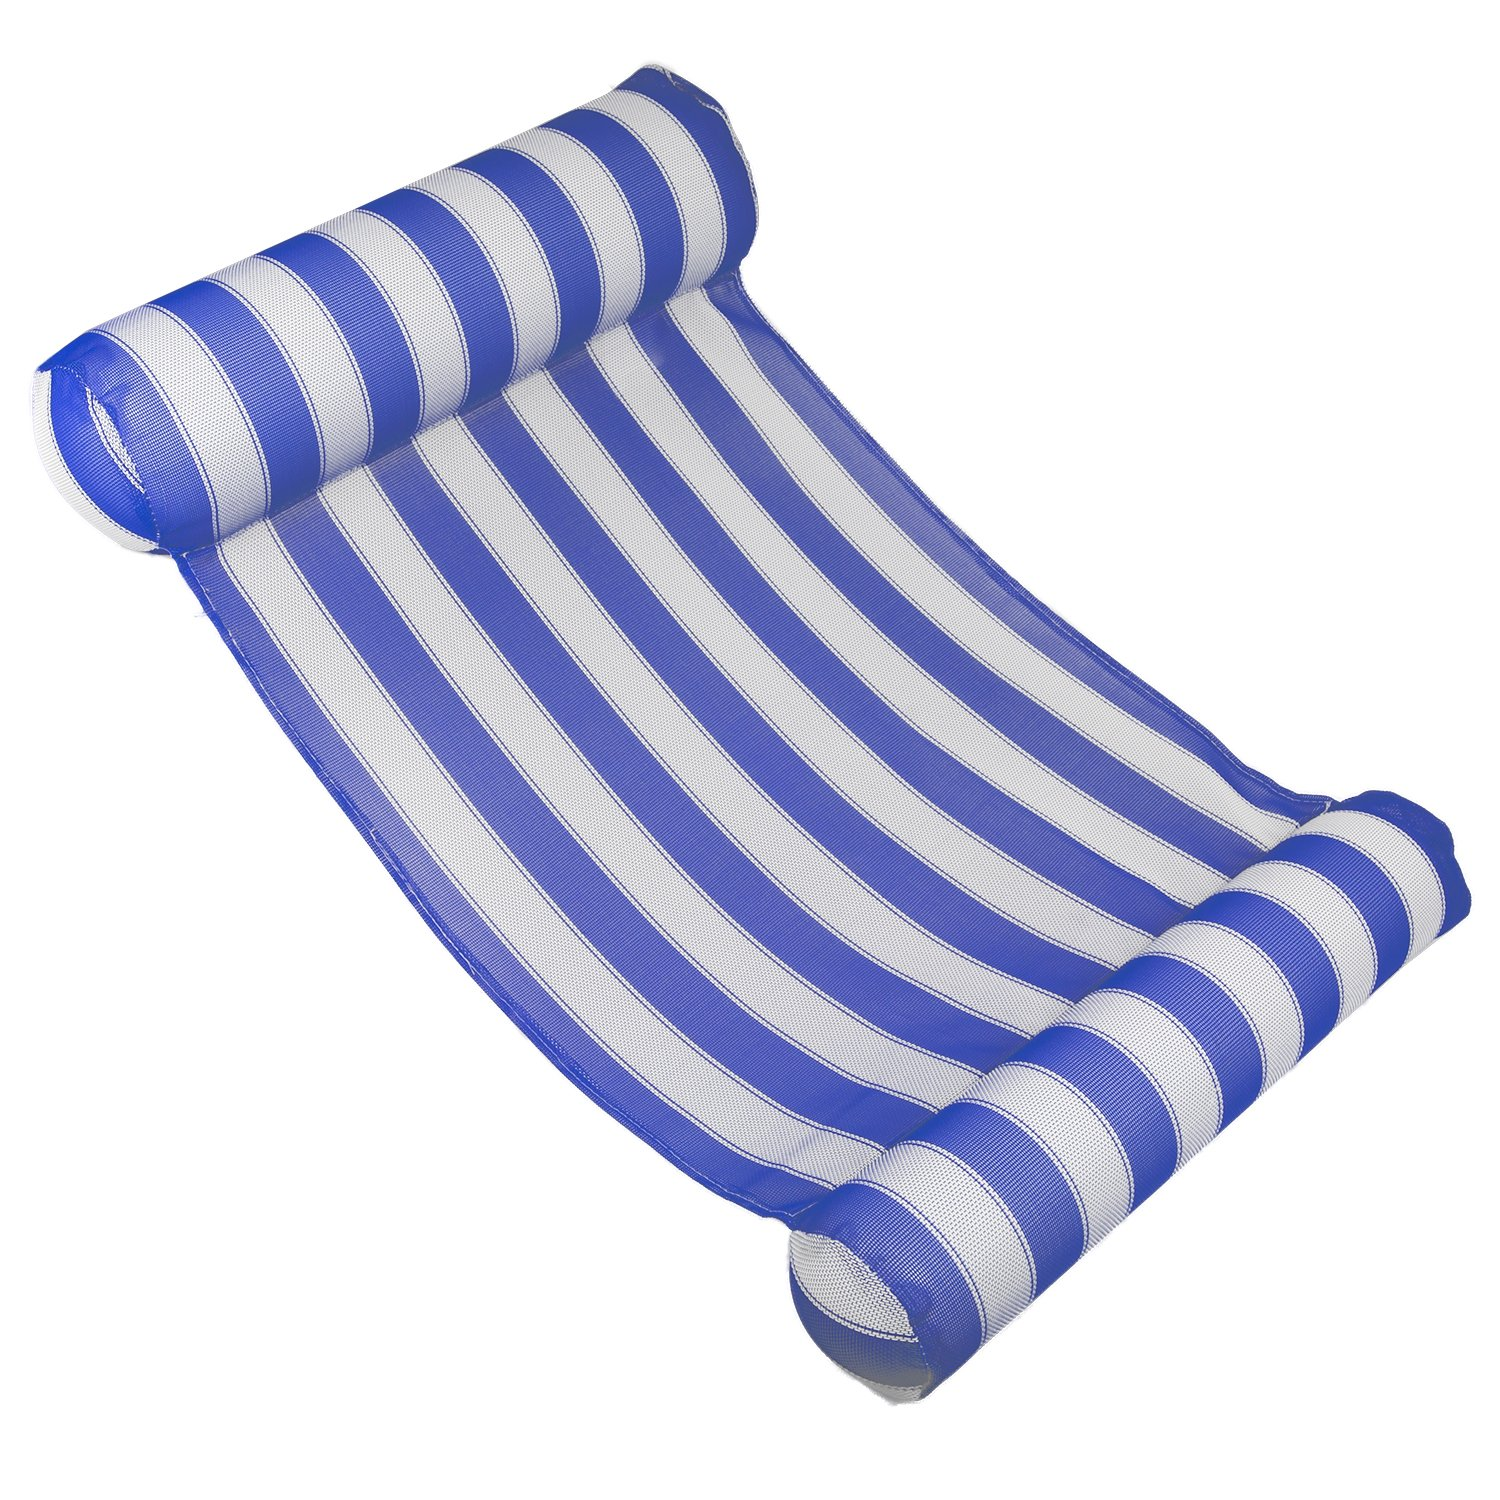 on air poolmaster the hammoc stand interior image for pool large hamm double hammock girl point decor water lounger using inflatable